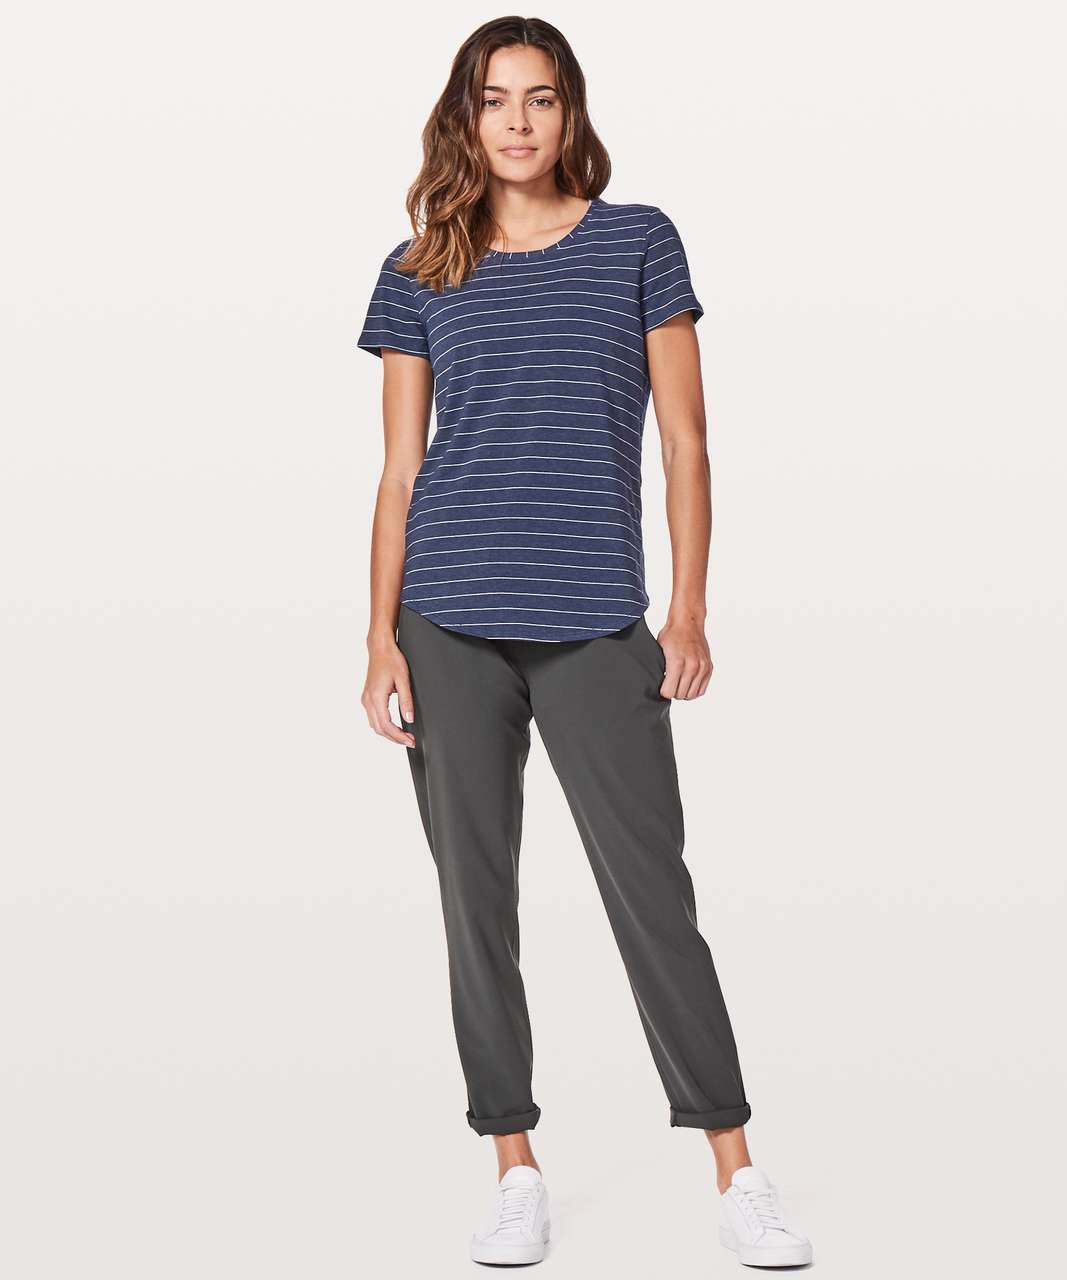 Lululemon Love Crew III - Short Serve Stripe Heathered Hero Blue White